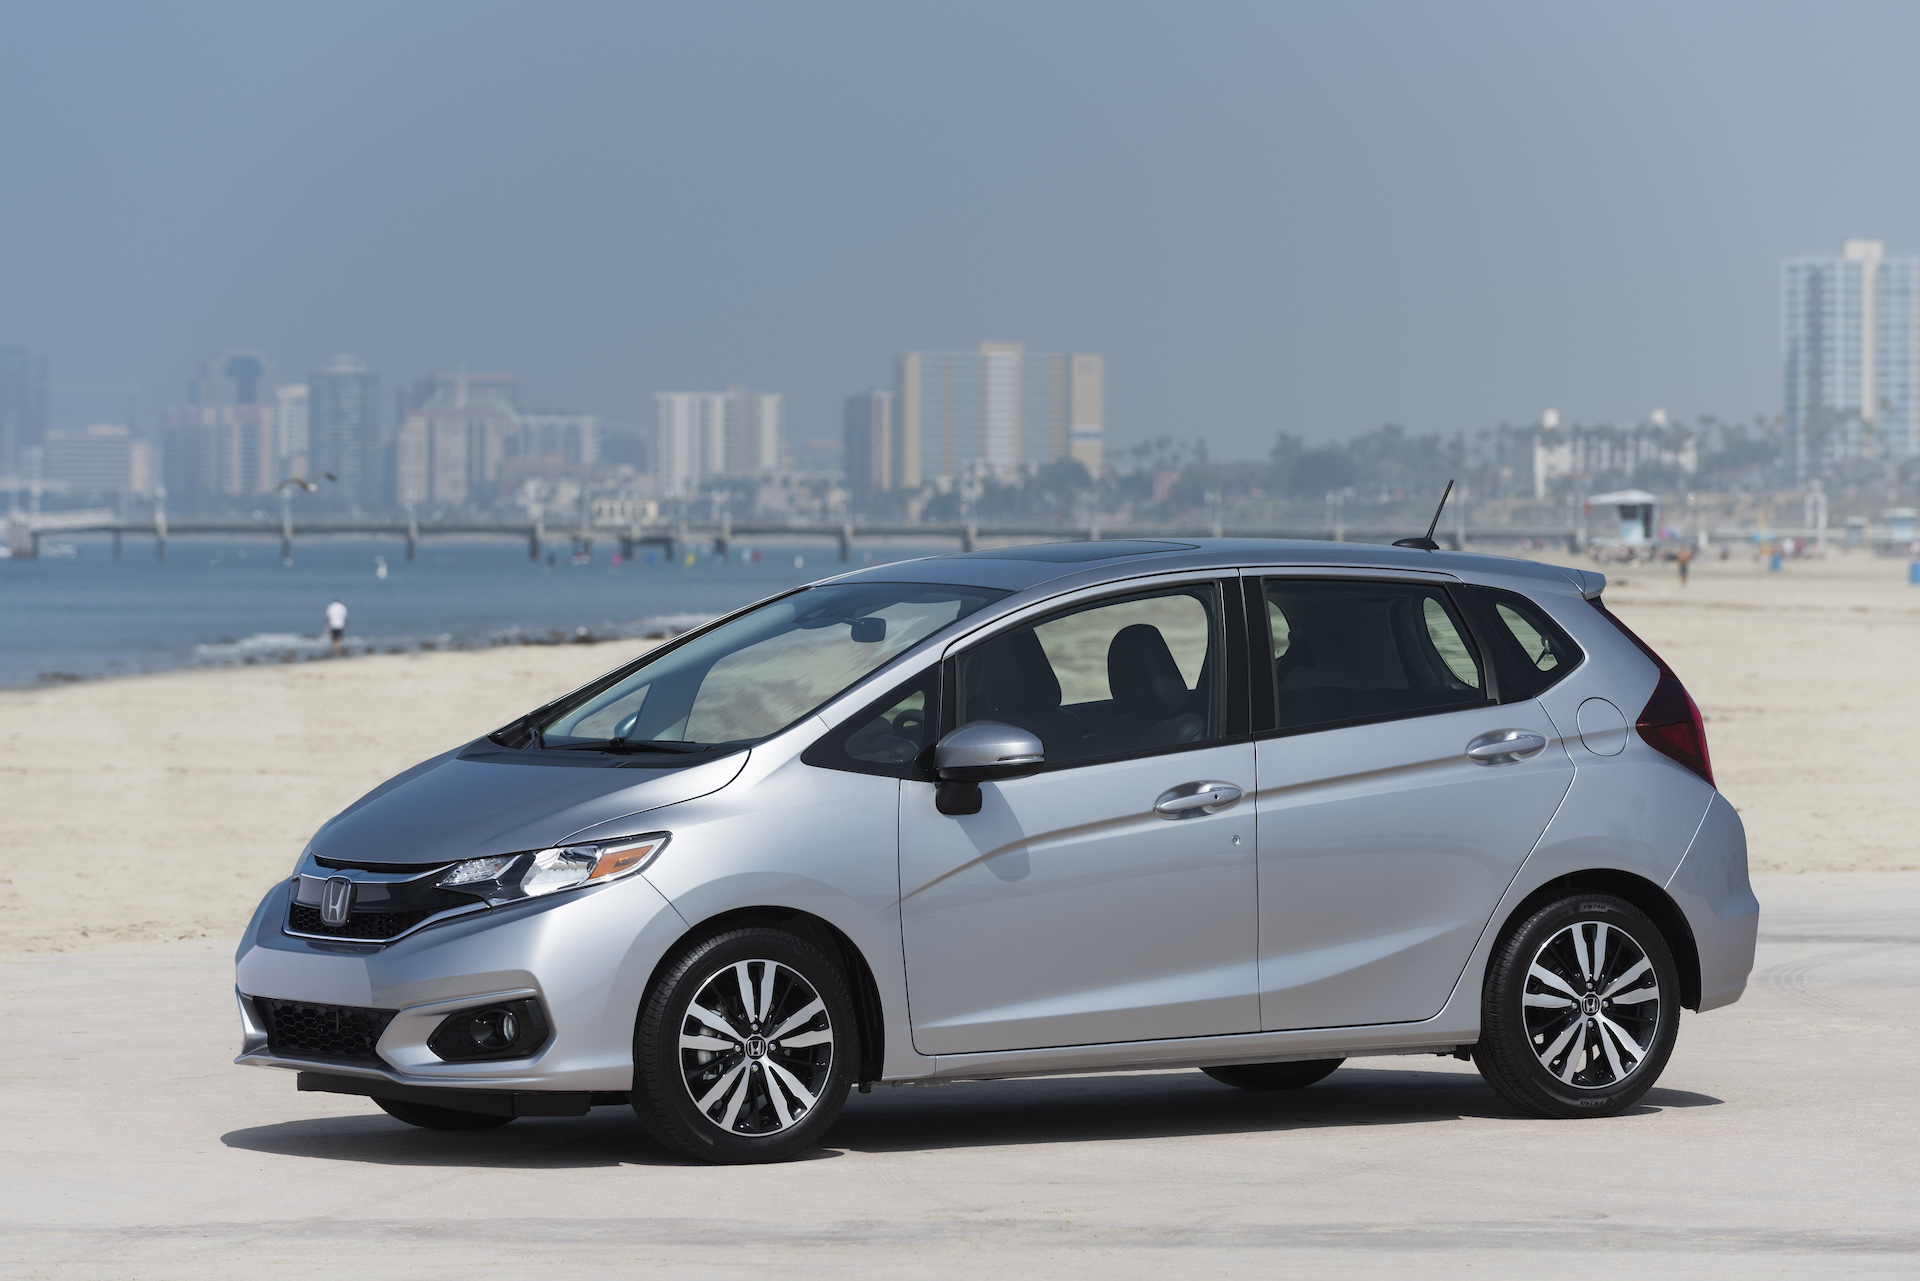 honda fit fuel filter replacement 2020 honda fit review  ratings  specs  prices  and photos the  2020 honda fit review  ratings  specs